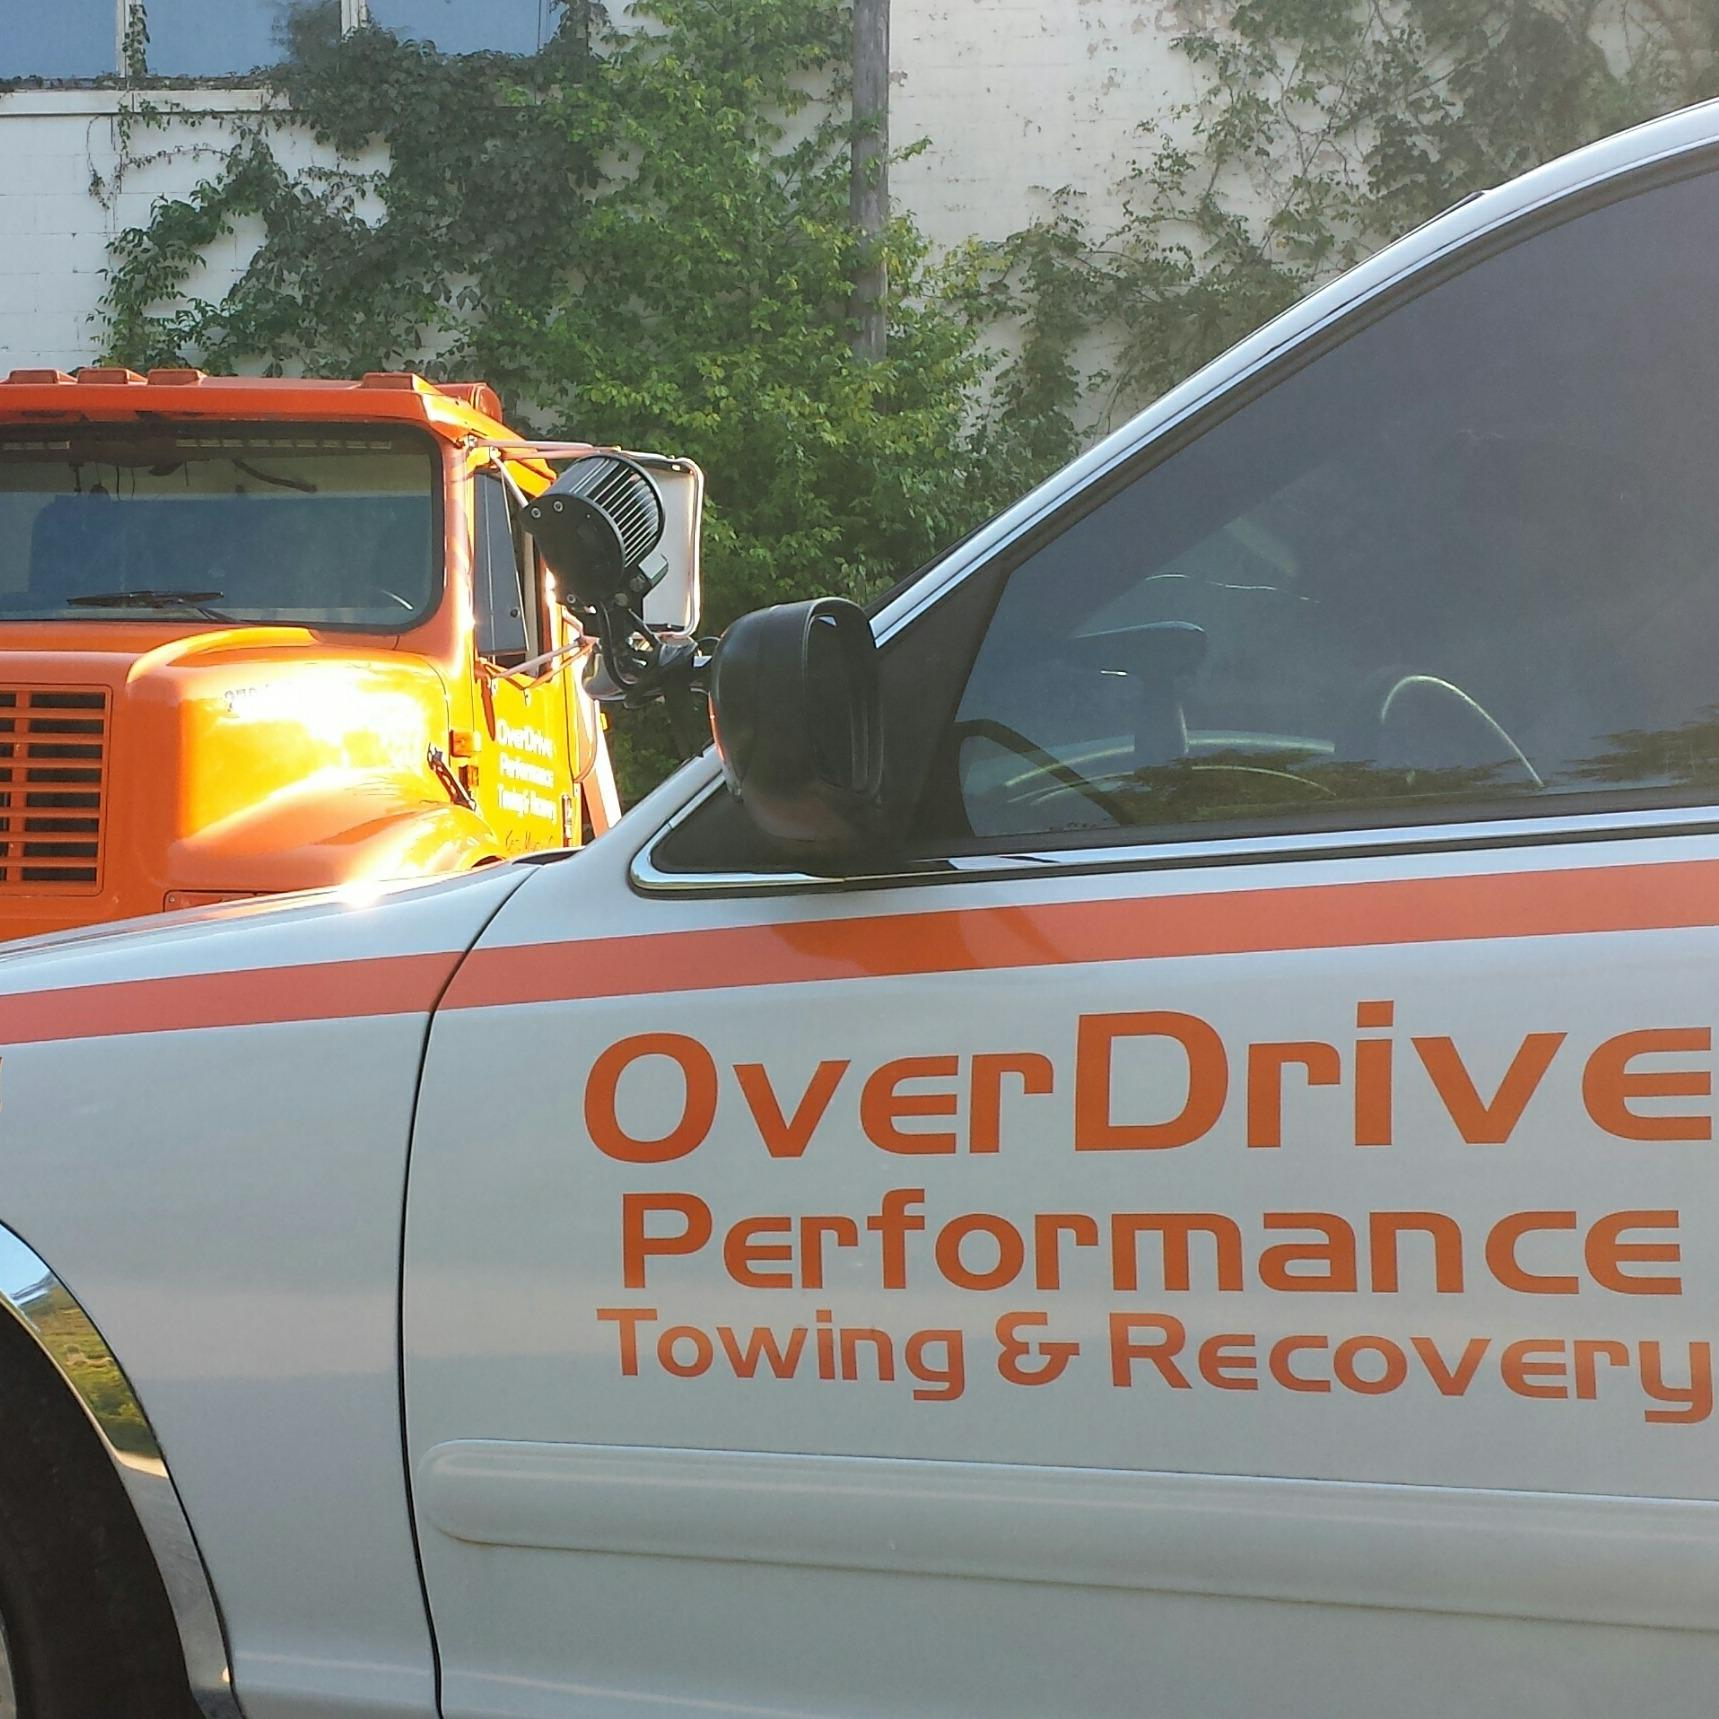 OverDrive Performance Towing & Recovery - Glasgow, KY 42141 - (270)670-6144 | ShowMeLocal.com